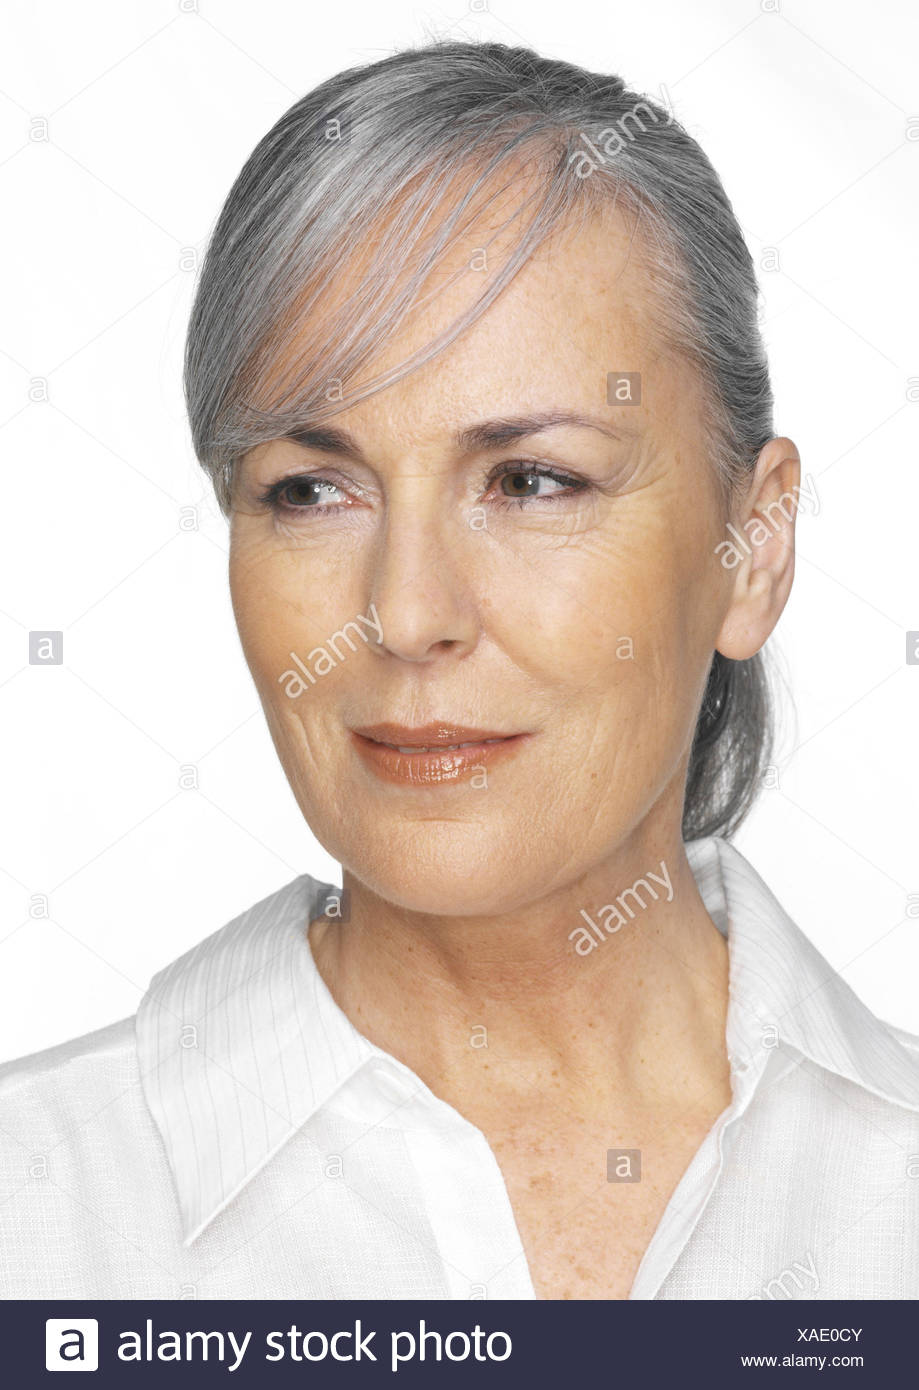 Senior, hairs tied together, view page, smile, portrait, woman, 55-65 years, middle old person, Best Age, blouse, grey-haired, hairstyle, made up, discreetly, naturalness, cultivated, dapperly, attractively, satisfaction, balance, beauty, Beauty, transmis - Stock Image